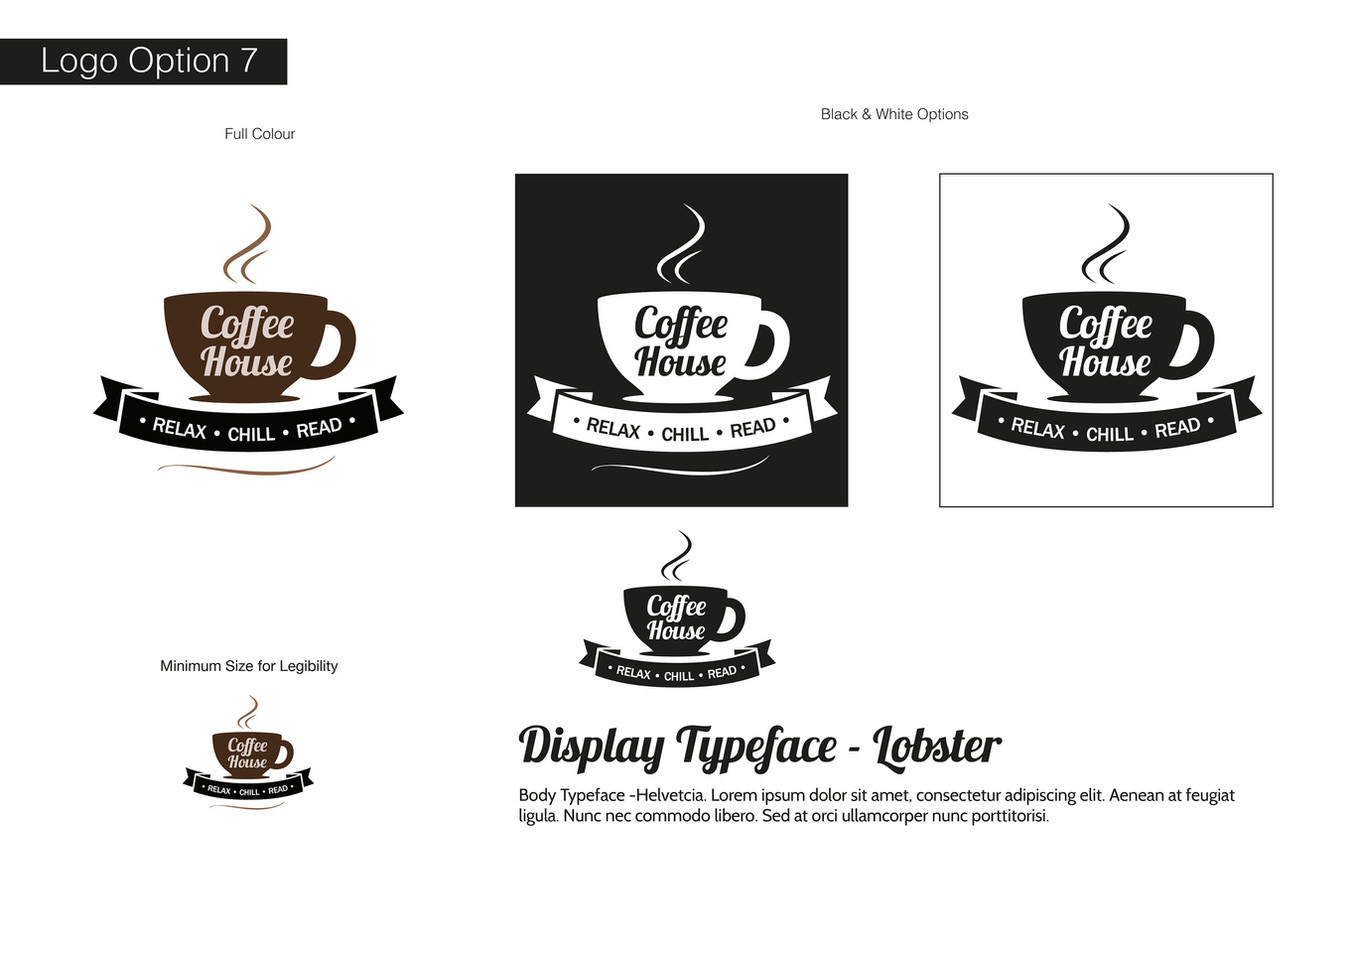 Coffee House Visual Identity - Development 7